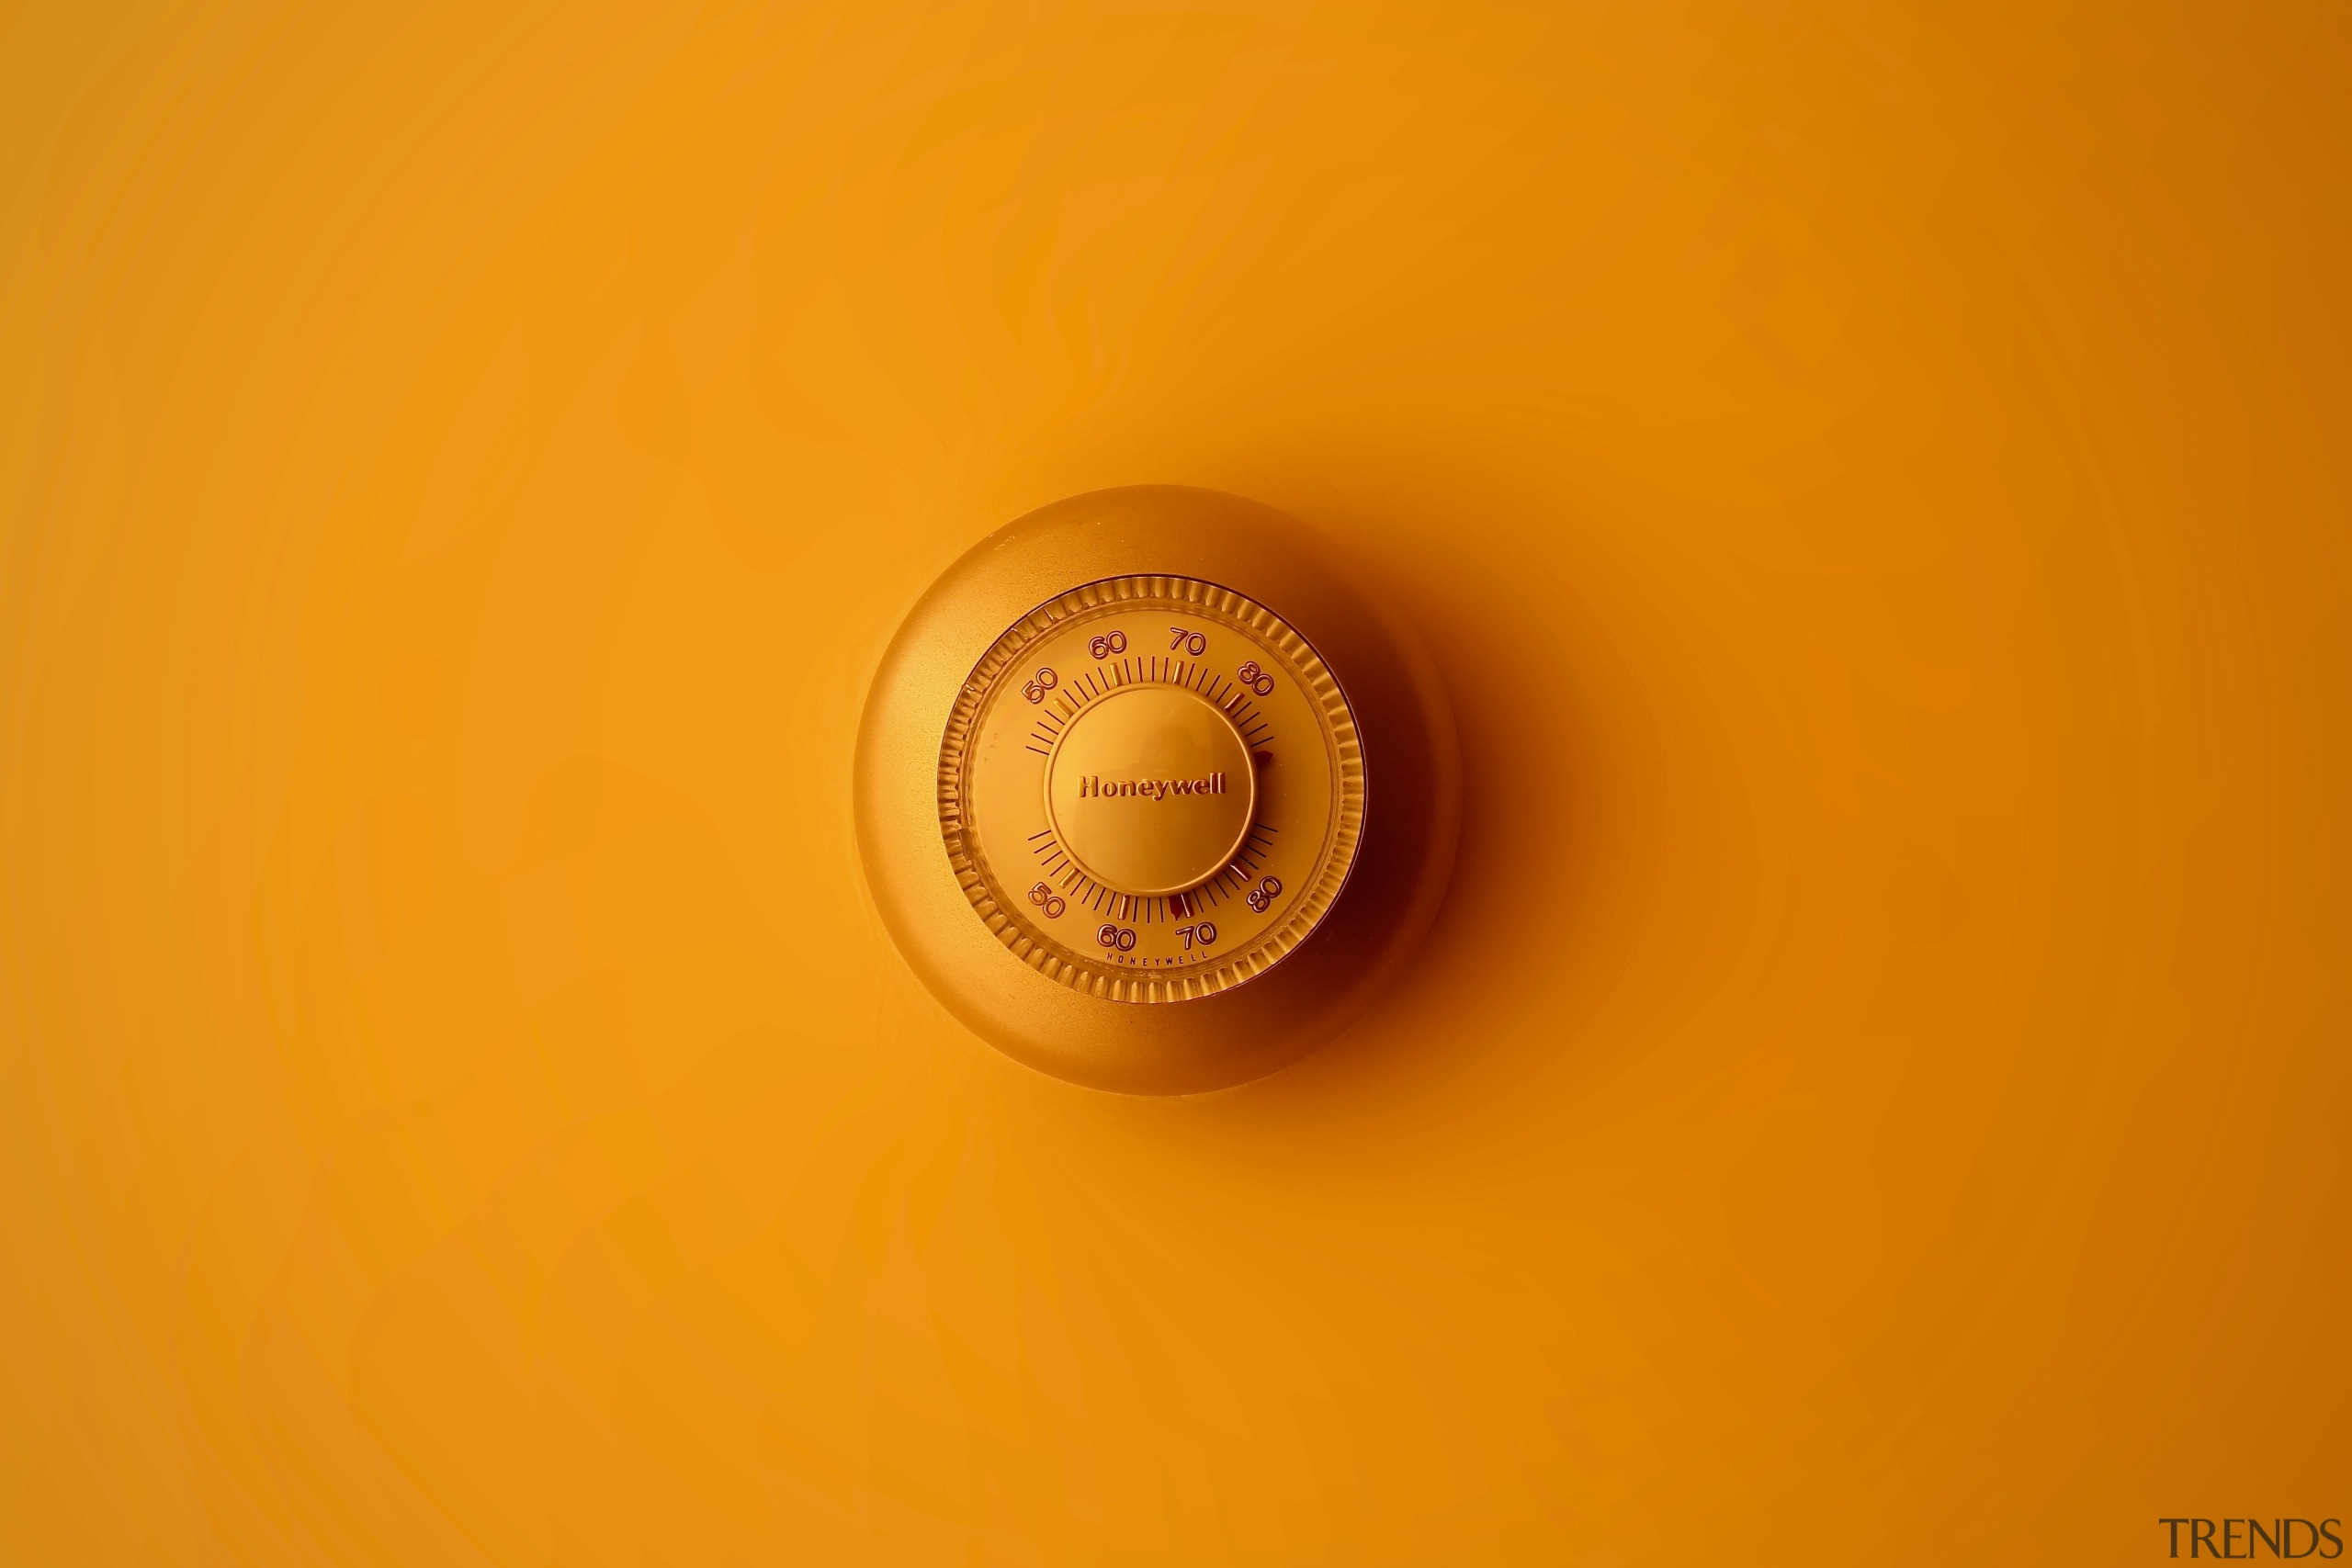 Have you considered a smart thermostat? - close close up, macro photography, yellow, orange